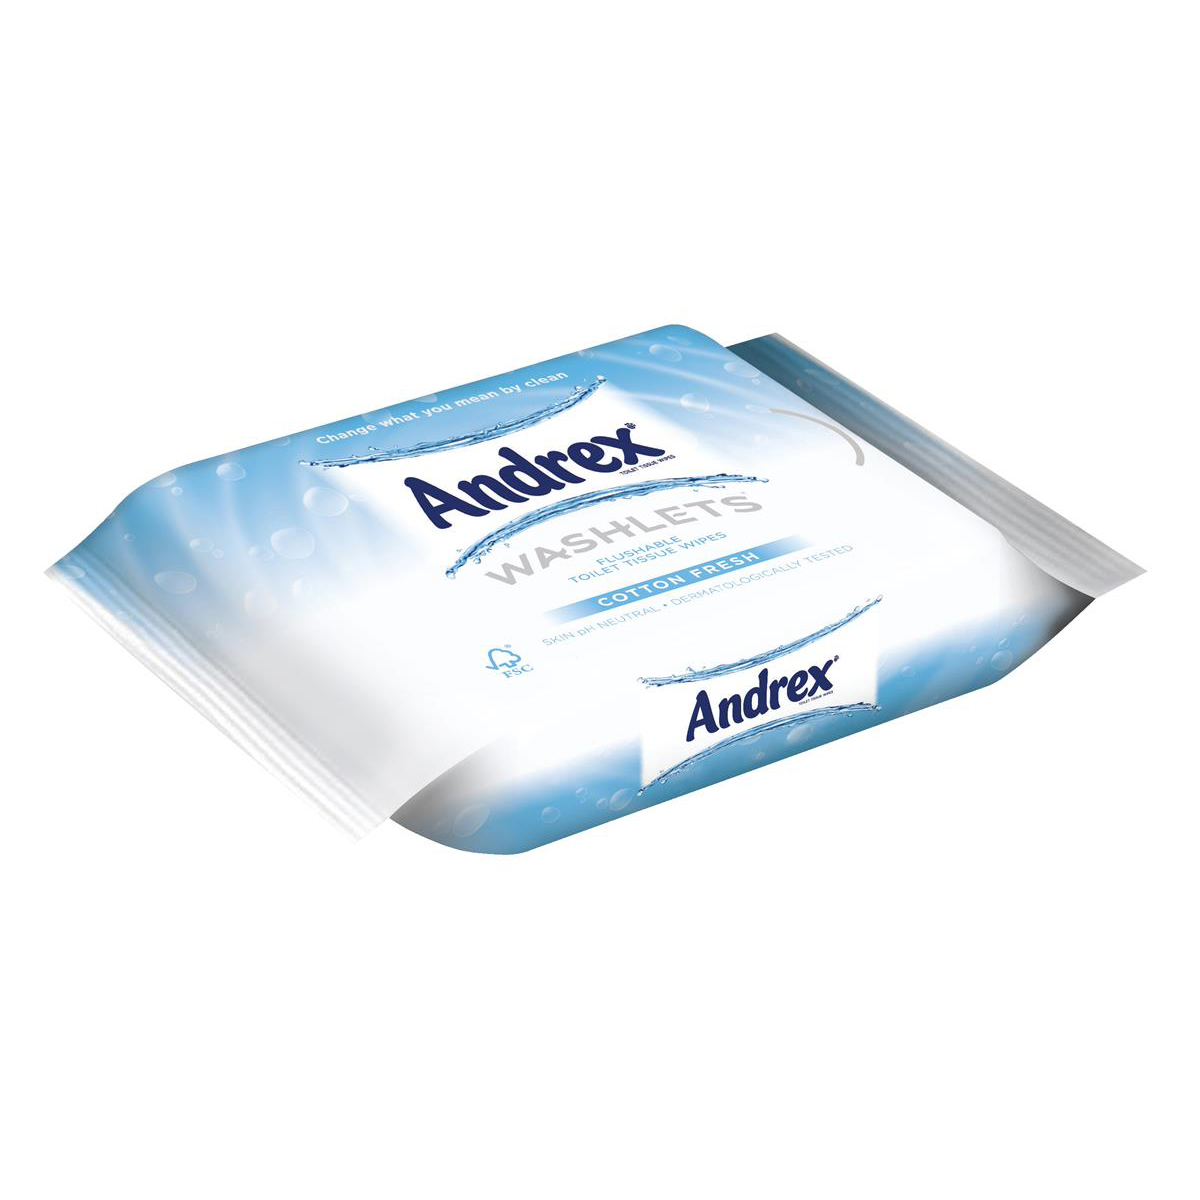 Andrex Toilet Tissue Moist Washlets Flushable 42 Sheets 190x130mm Cotton Fresh Ref 0699204 Pack 1